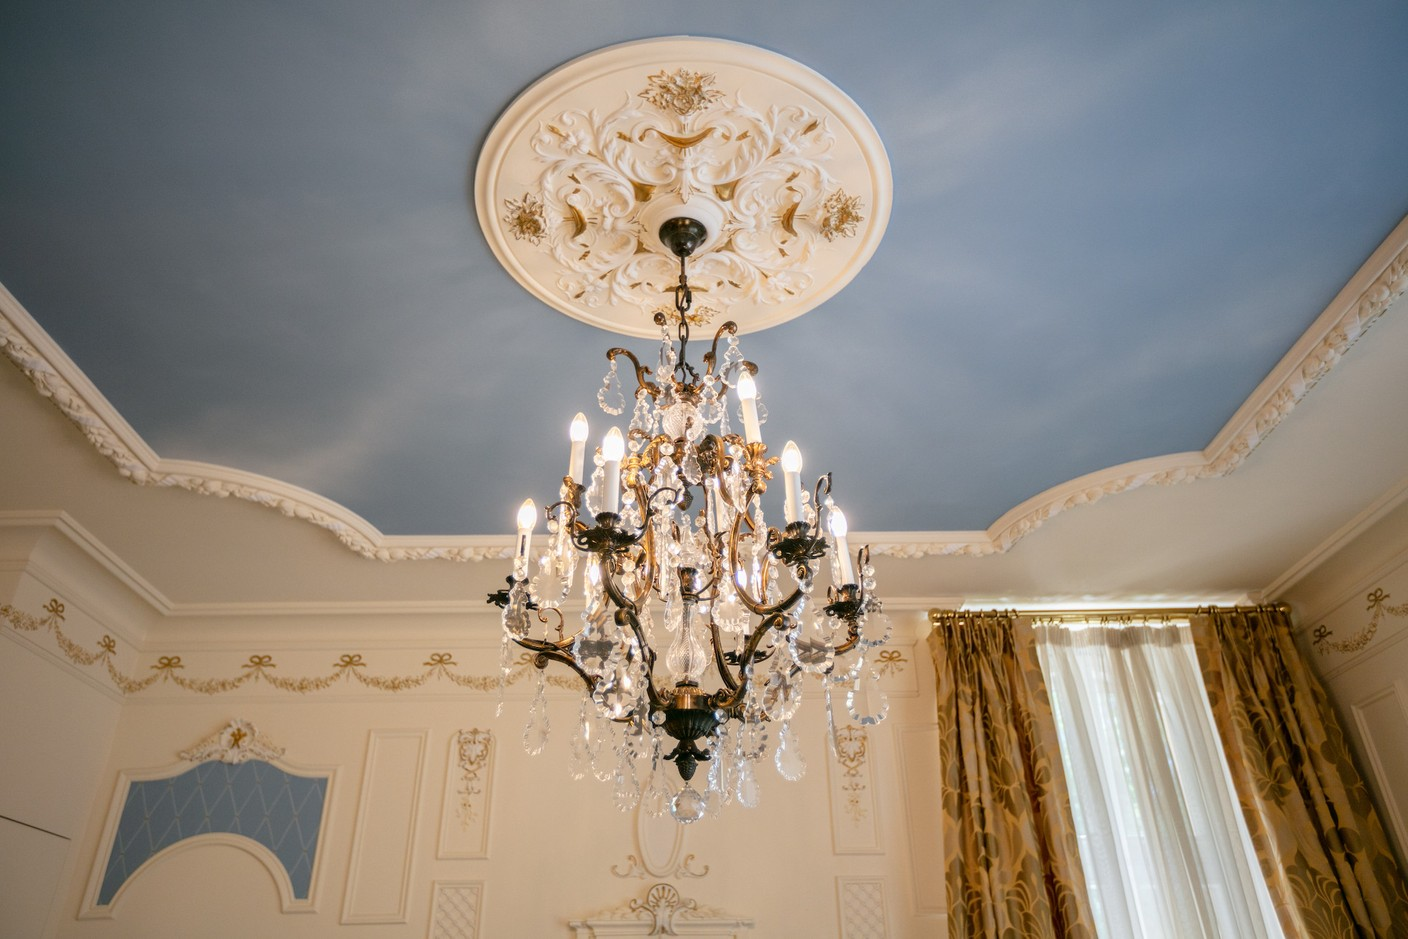 A chandelier in a ground floor salon, now used for small gatherings Romain Gamba/Maison Moderne